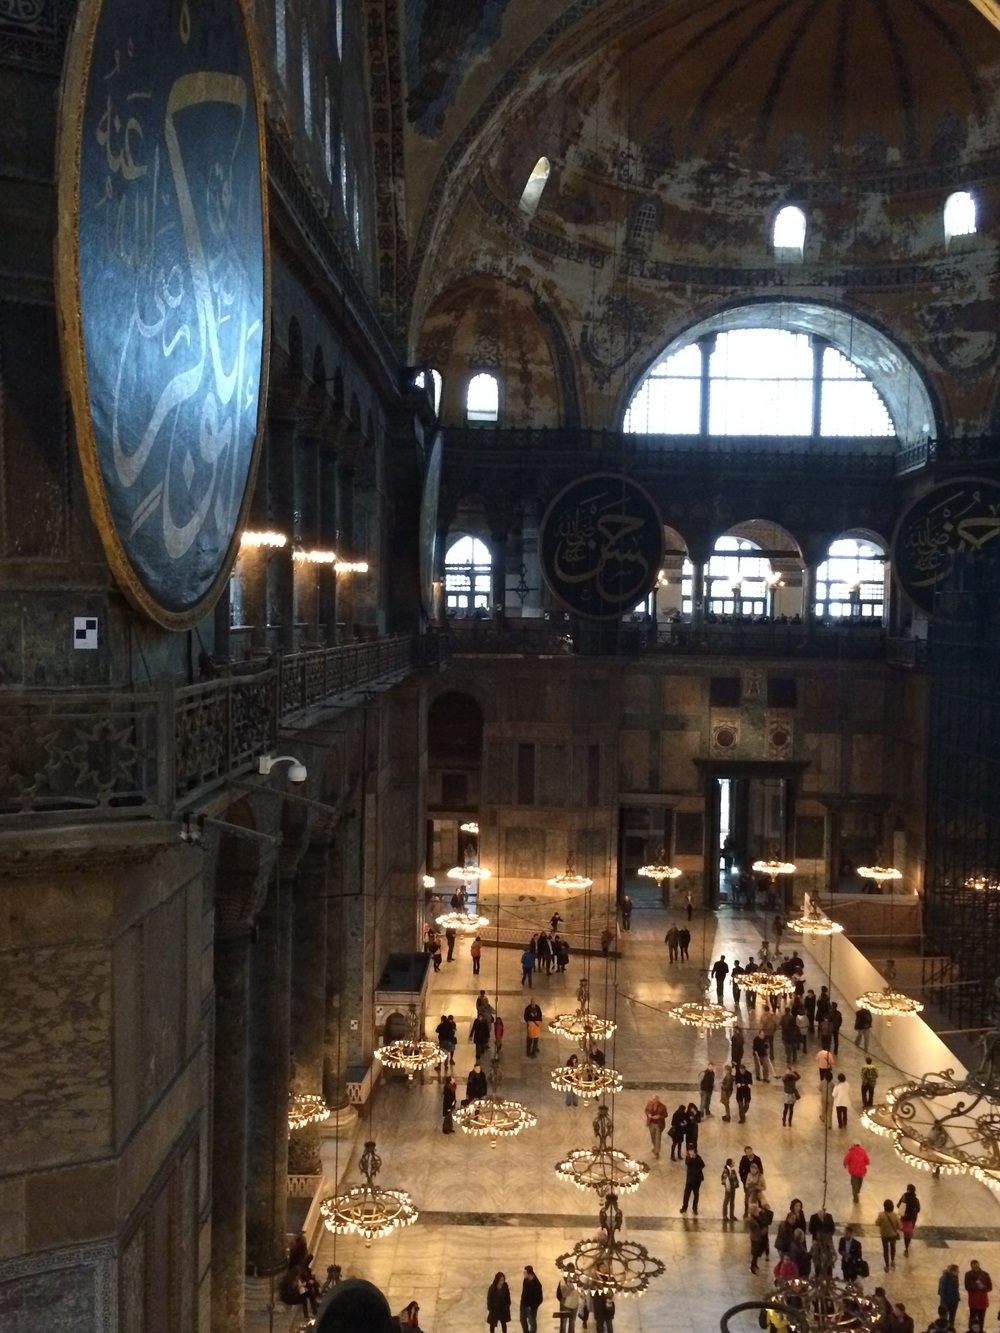 View of the Hagia Sophia from the second story facing away from the mihrab  (altar).